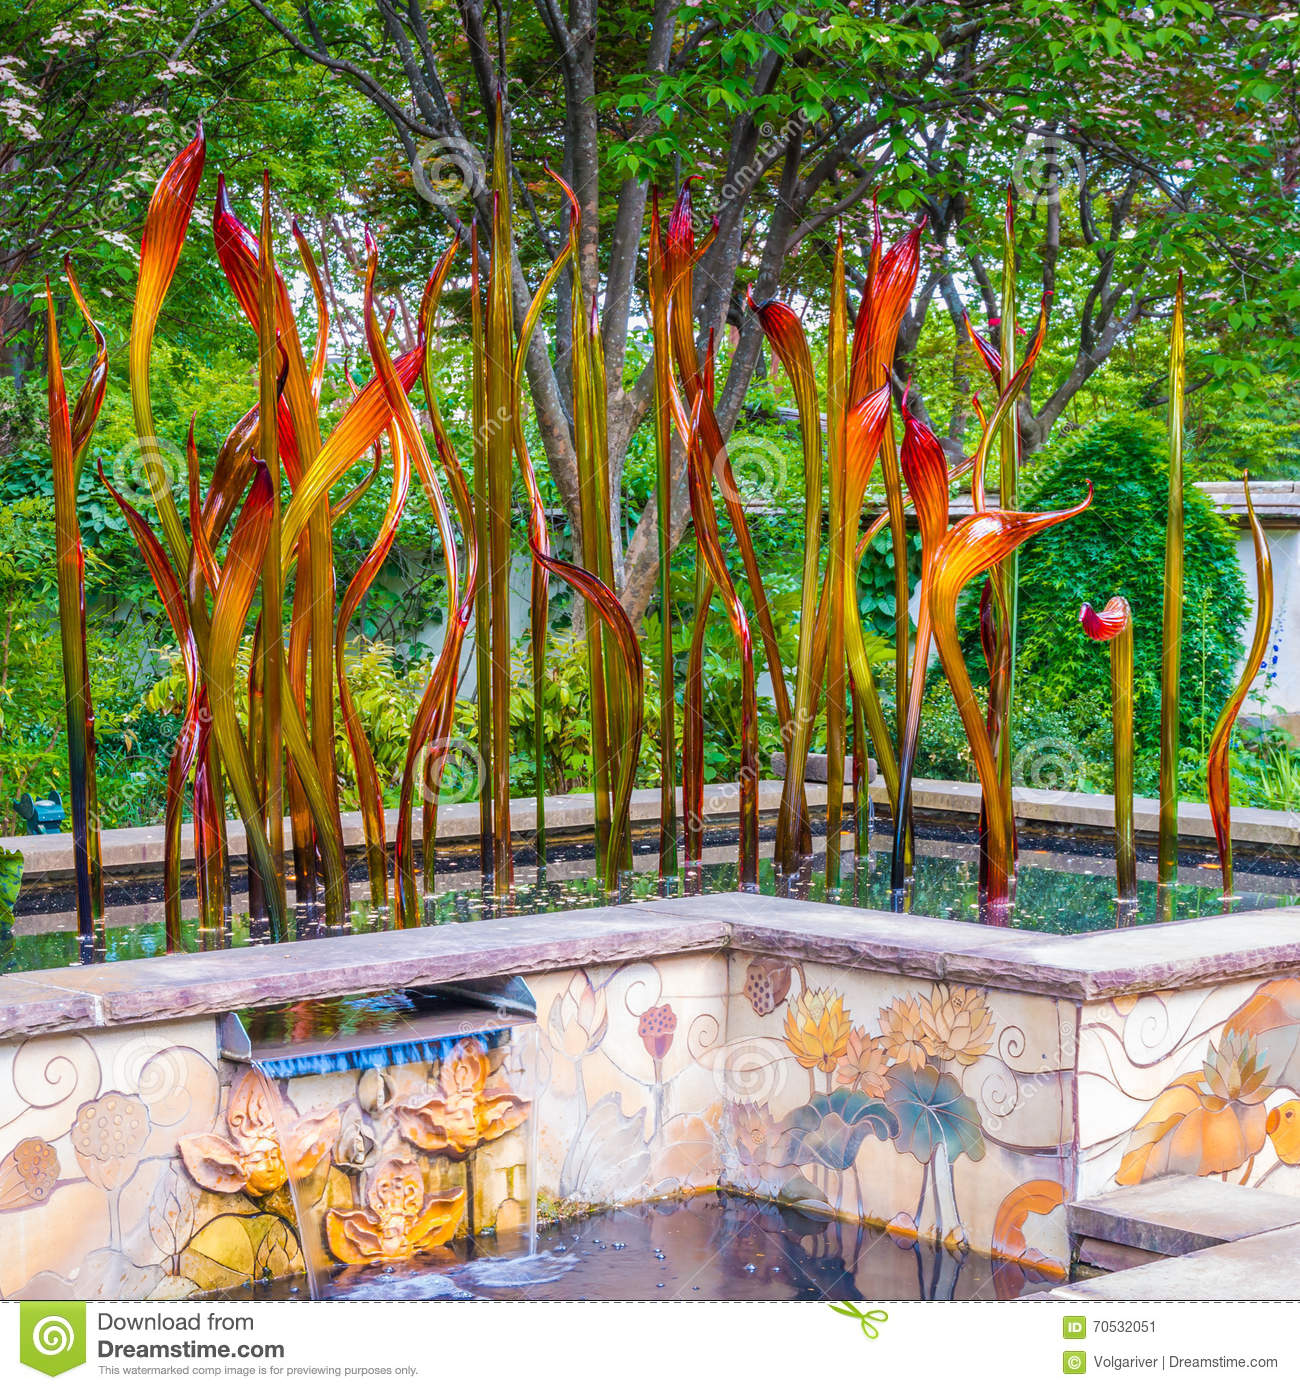 Exhibition Of Glass Artist Chihuly In Atlanta Botanical Garden Editorial Photo Image Of Trees